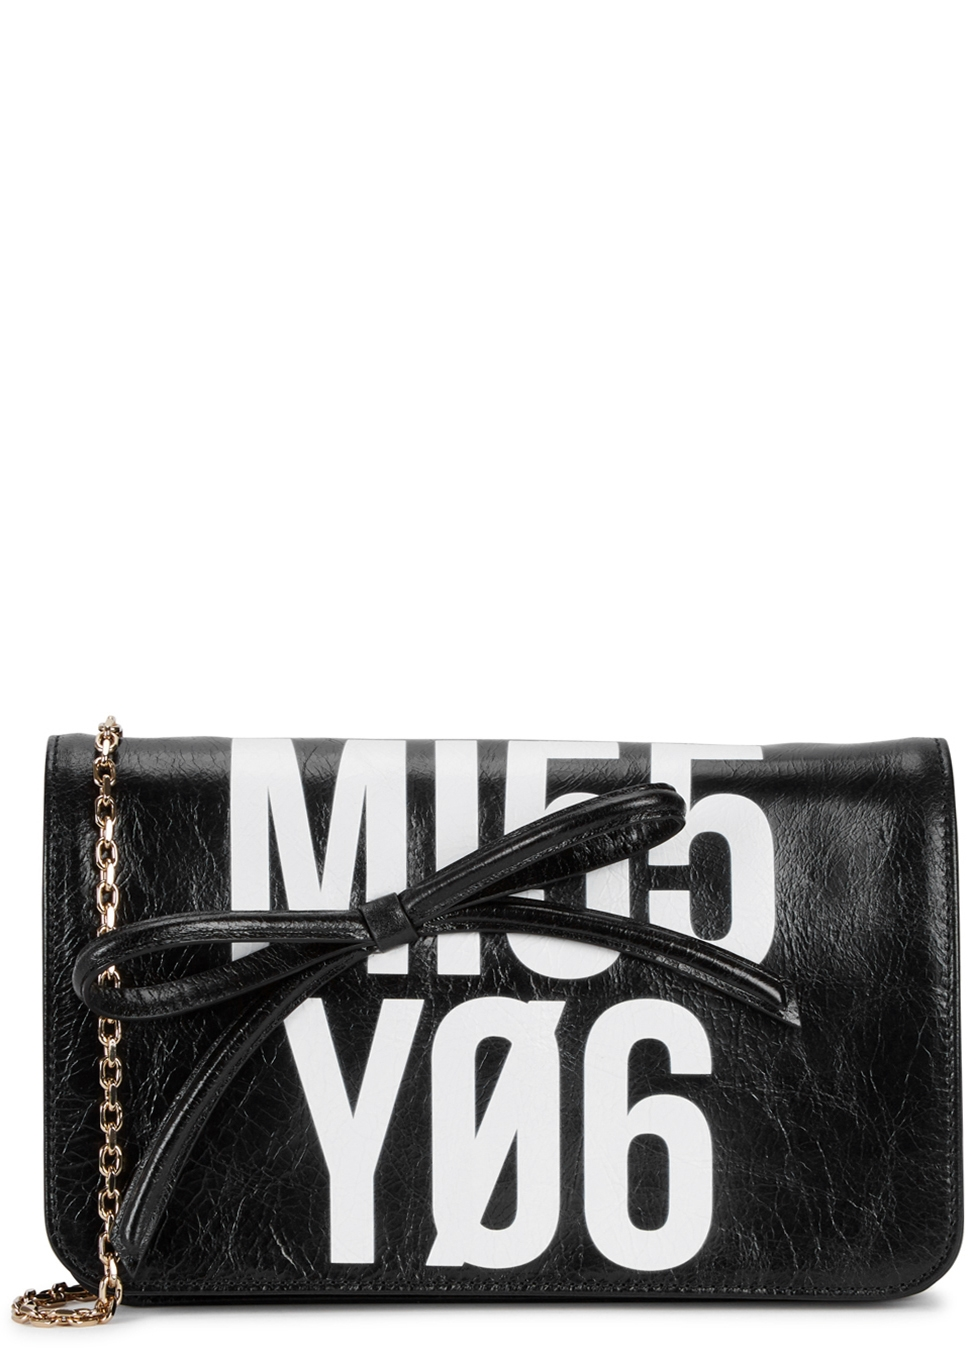 RED VALENTINO BLACK PRINTED LEATHER SHOULDER BAG